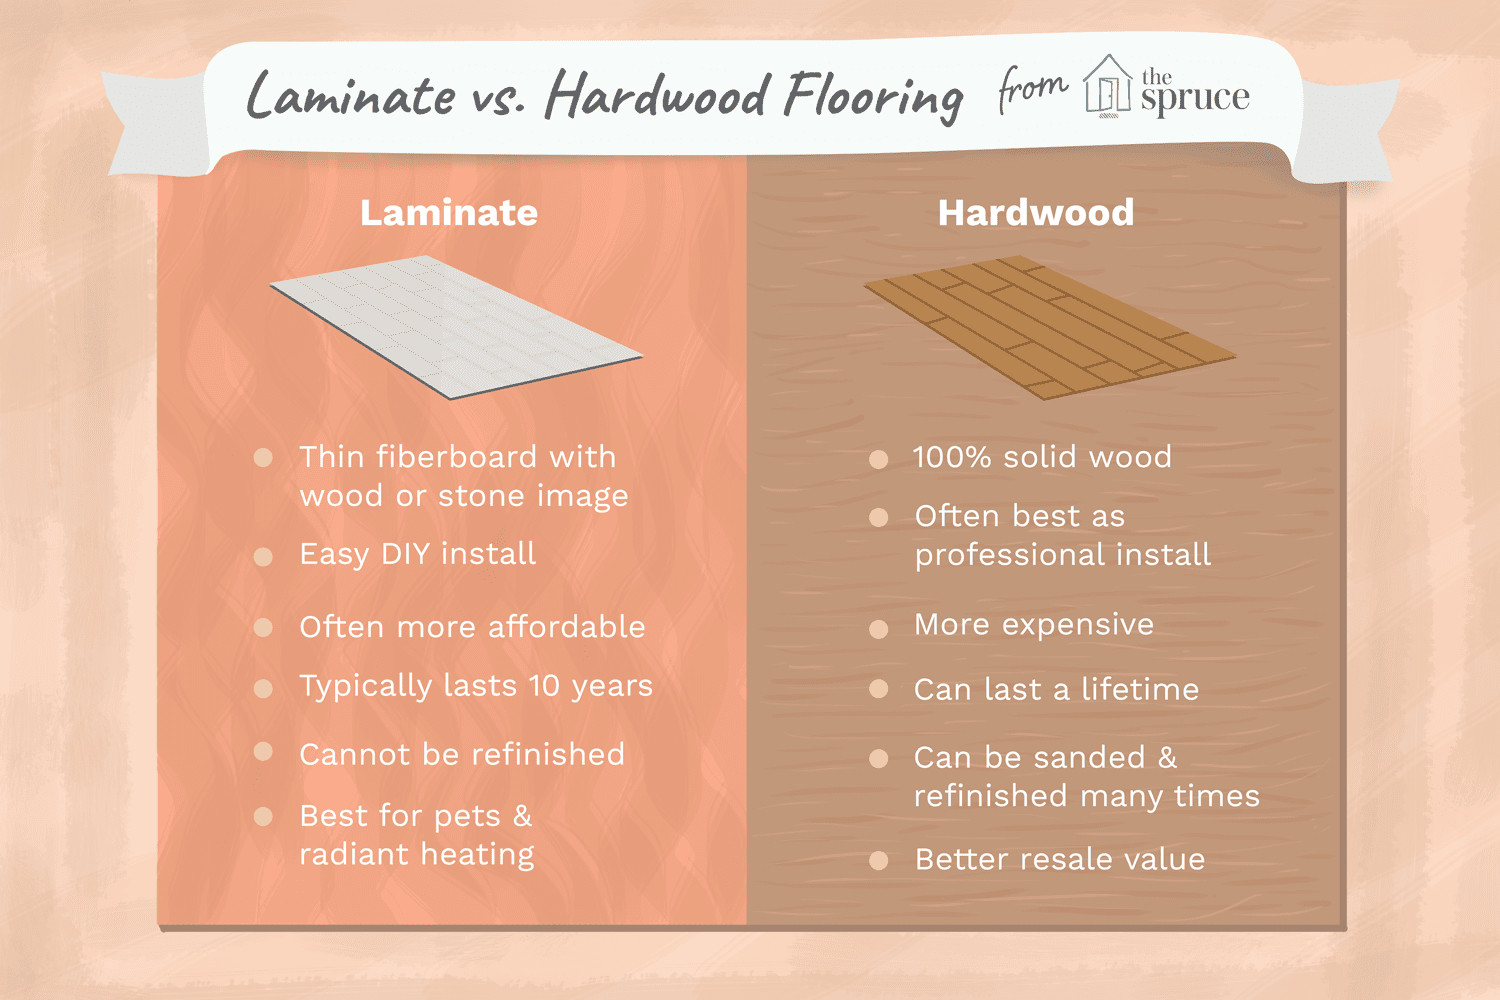 how much does restaining hardwood floors cost of laminate vs hardwood doesnt have to be a hard decision with hardwood doesnt have to be a hard decision